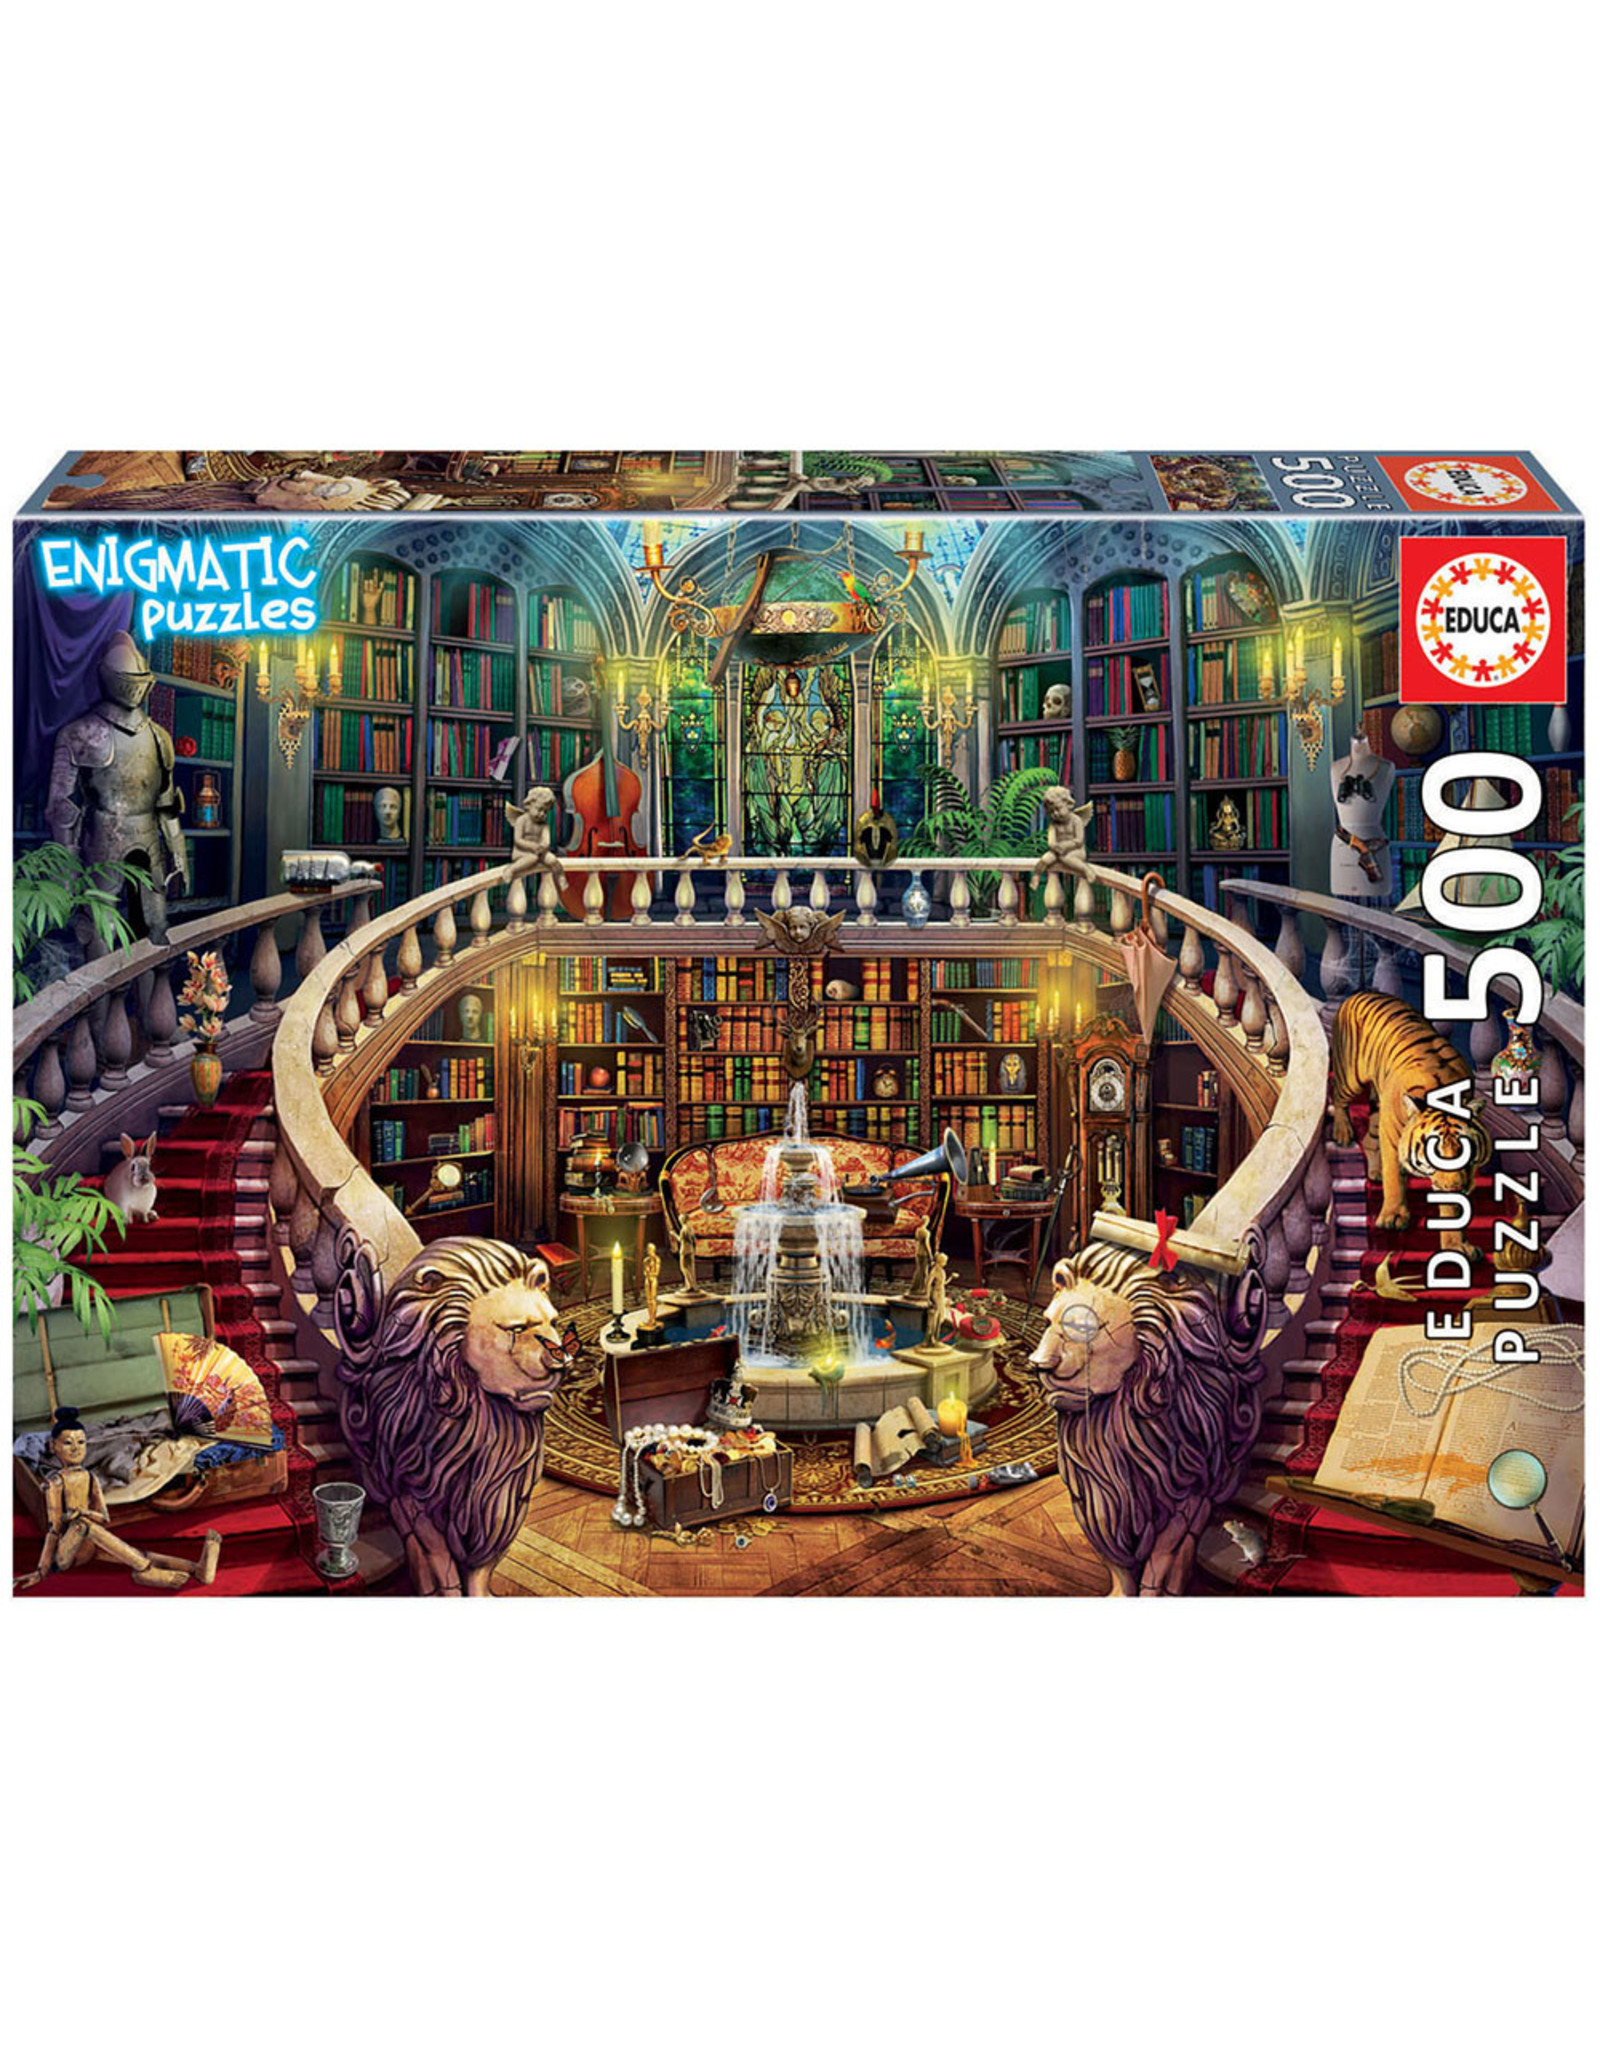 Educa Old Library 500pc Enigmatic Puzzle